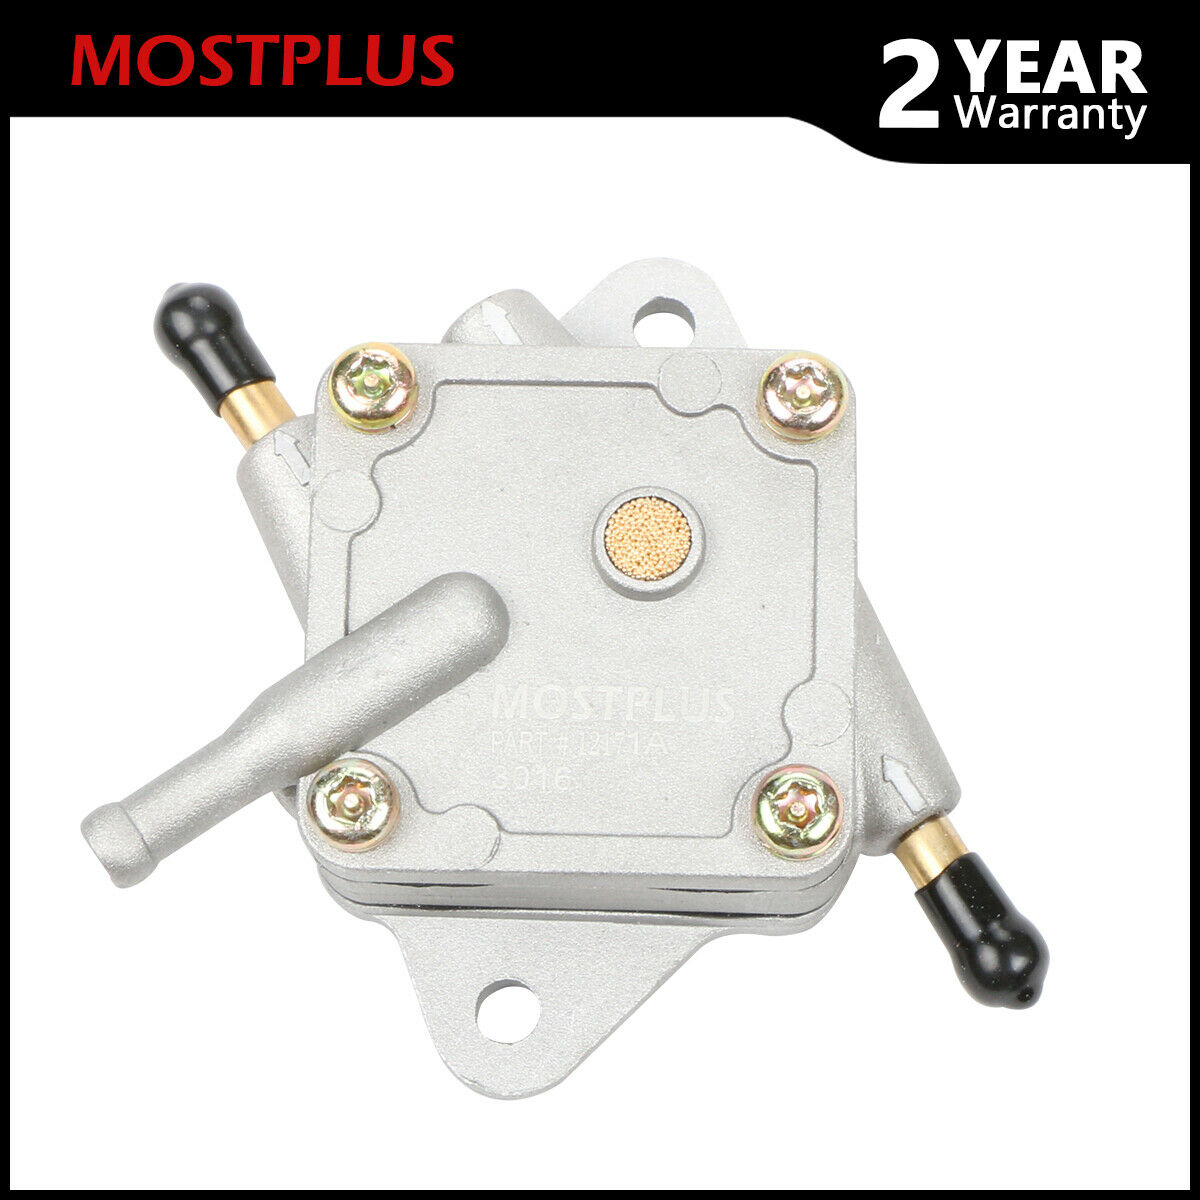 Fuel Pump For Ezgo Txt Medalist Golf Cart 4 Cycle 295cc 350cc 72021 Filter G01 1 Of 3free Shipping